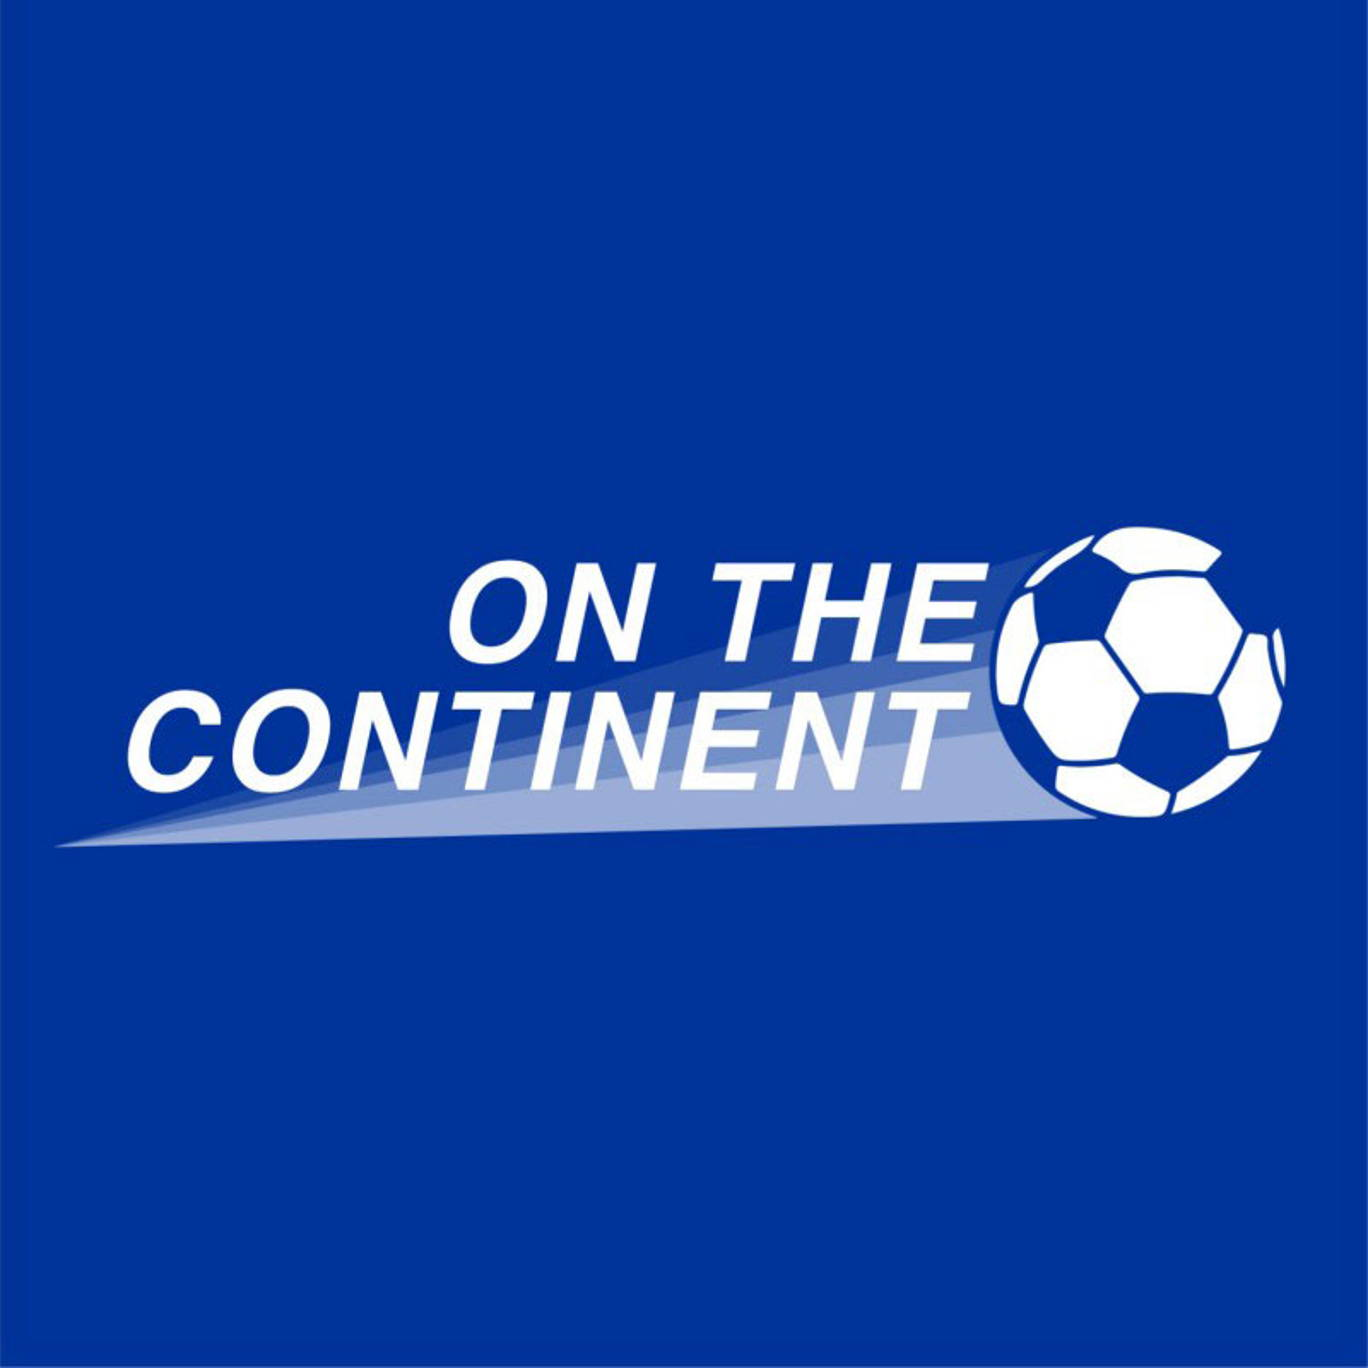 The artwork for the On The Continent podcast.